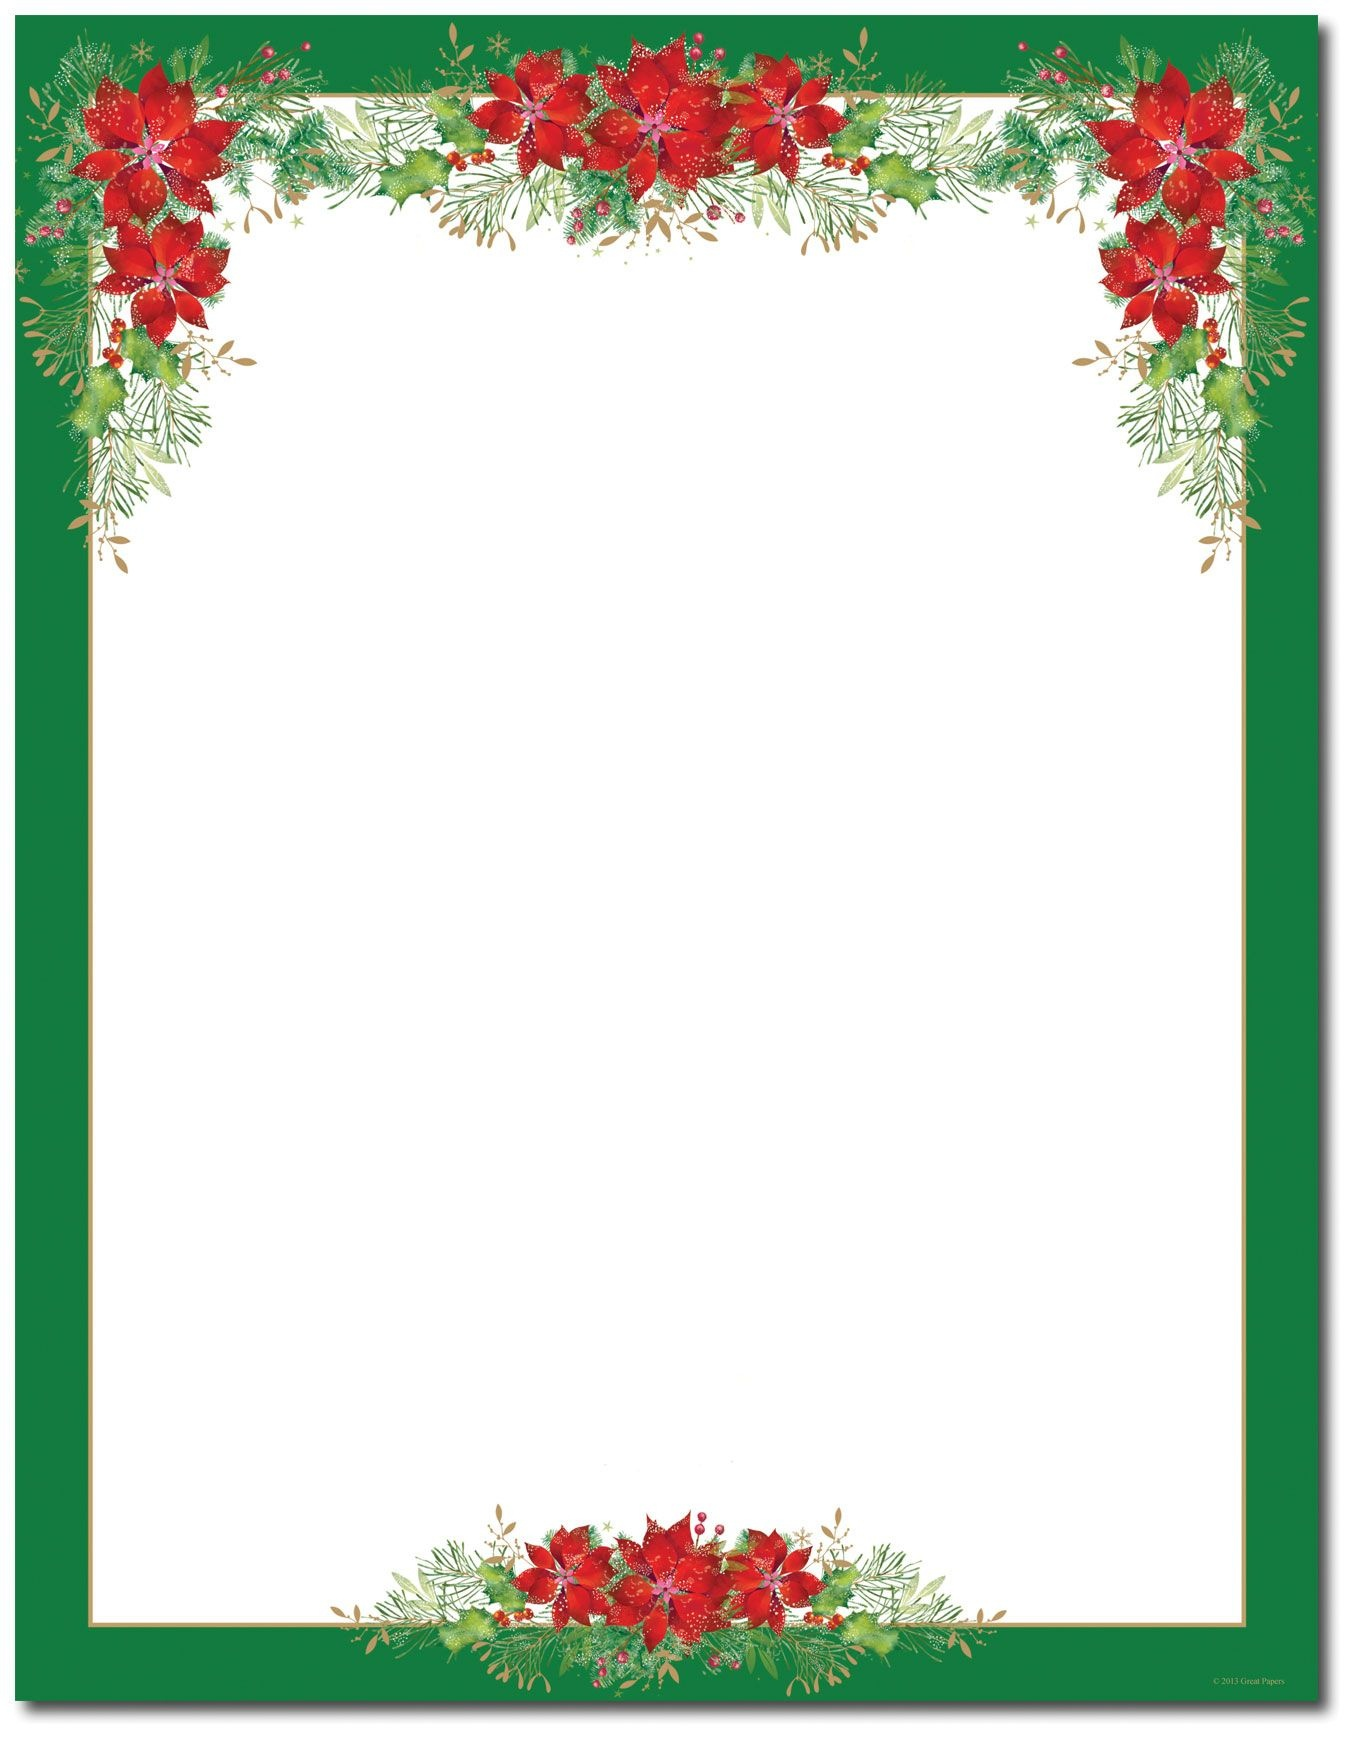 Poinsettia Valance Letterhead | Holiday Papers | Christmas Border - Free Printable Letterhead Borders